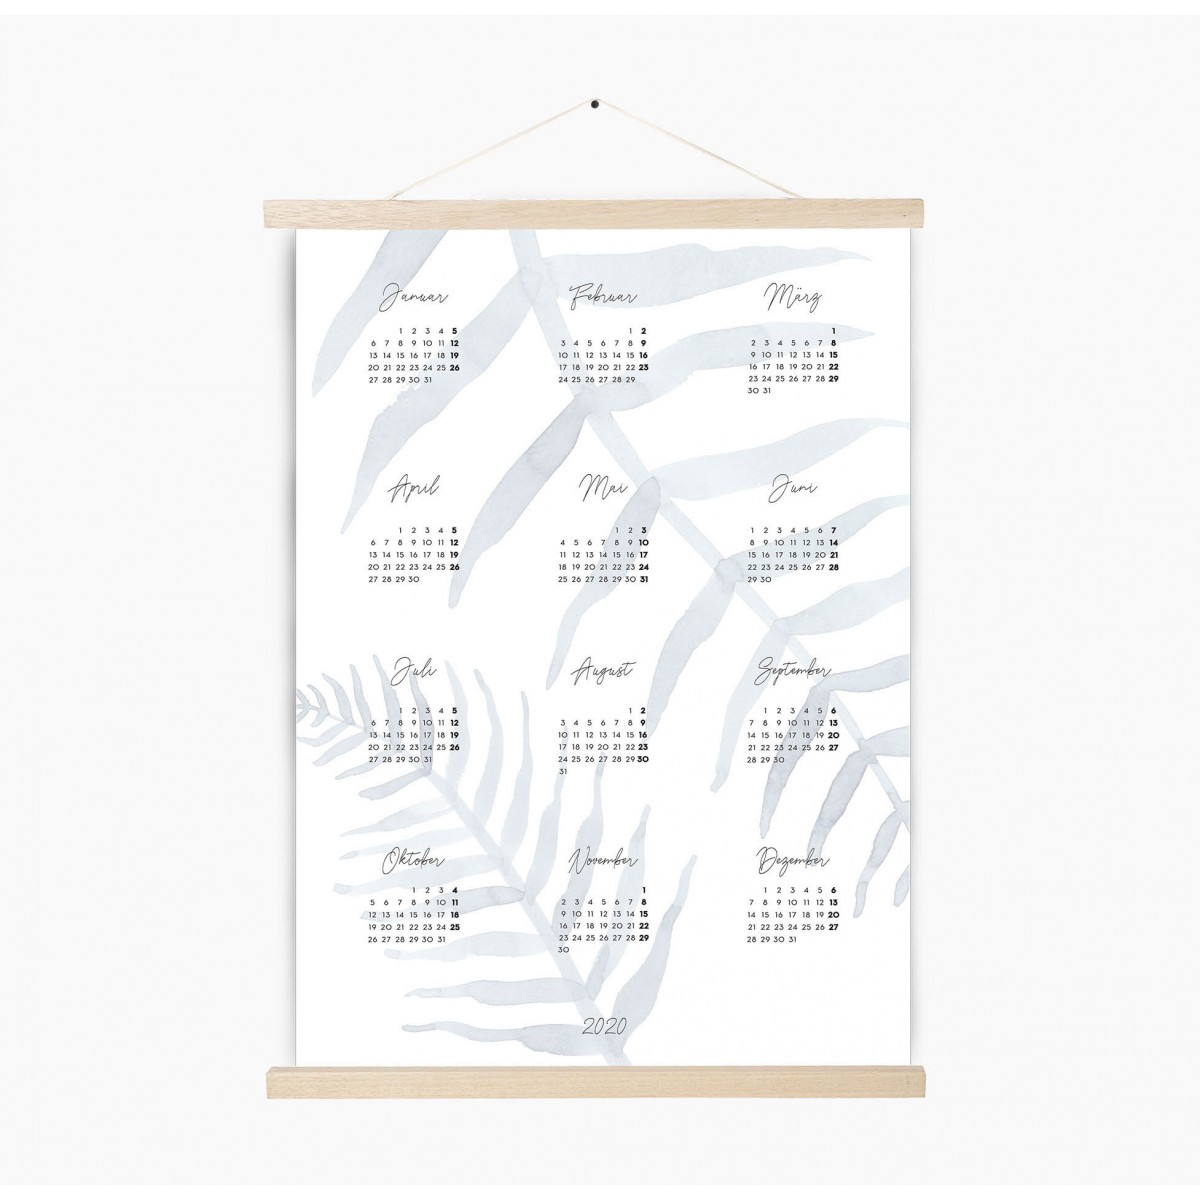 Kruth Design KALENDER 2020 / LEAF